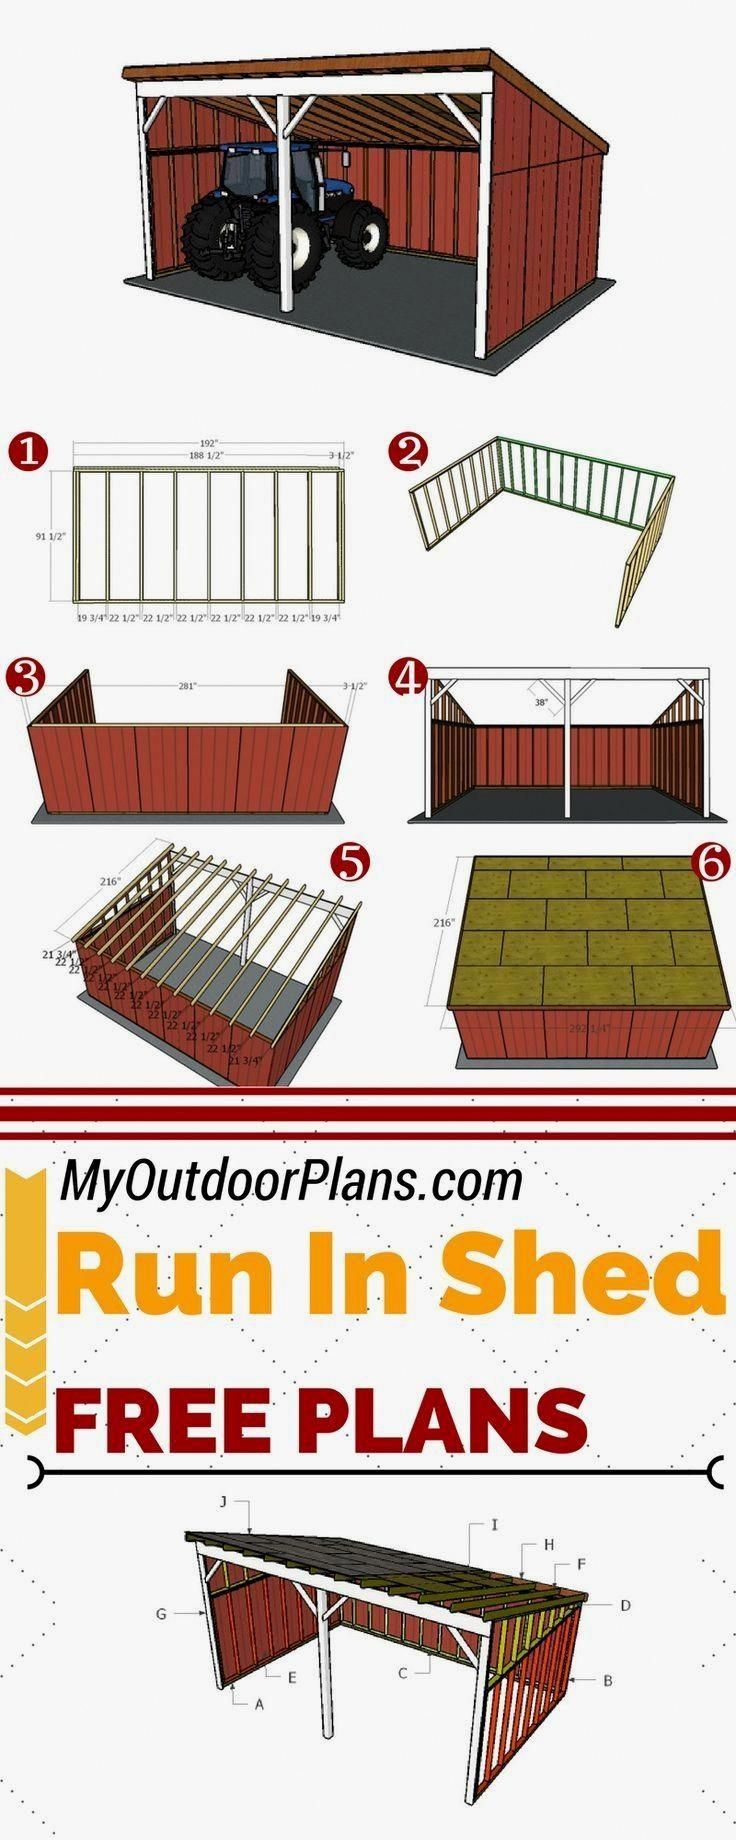 hight resolution of home hardware garden shed plans and pics of building plans for 8x12 garden shed